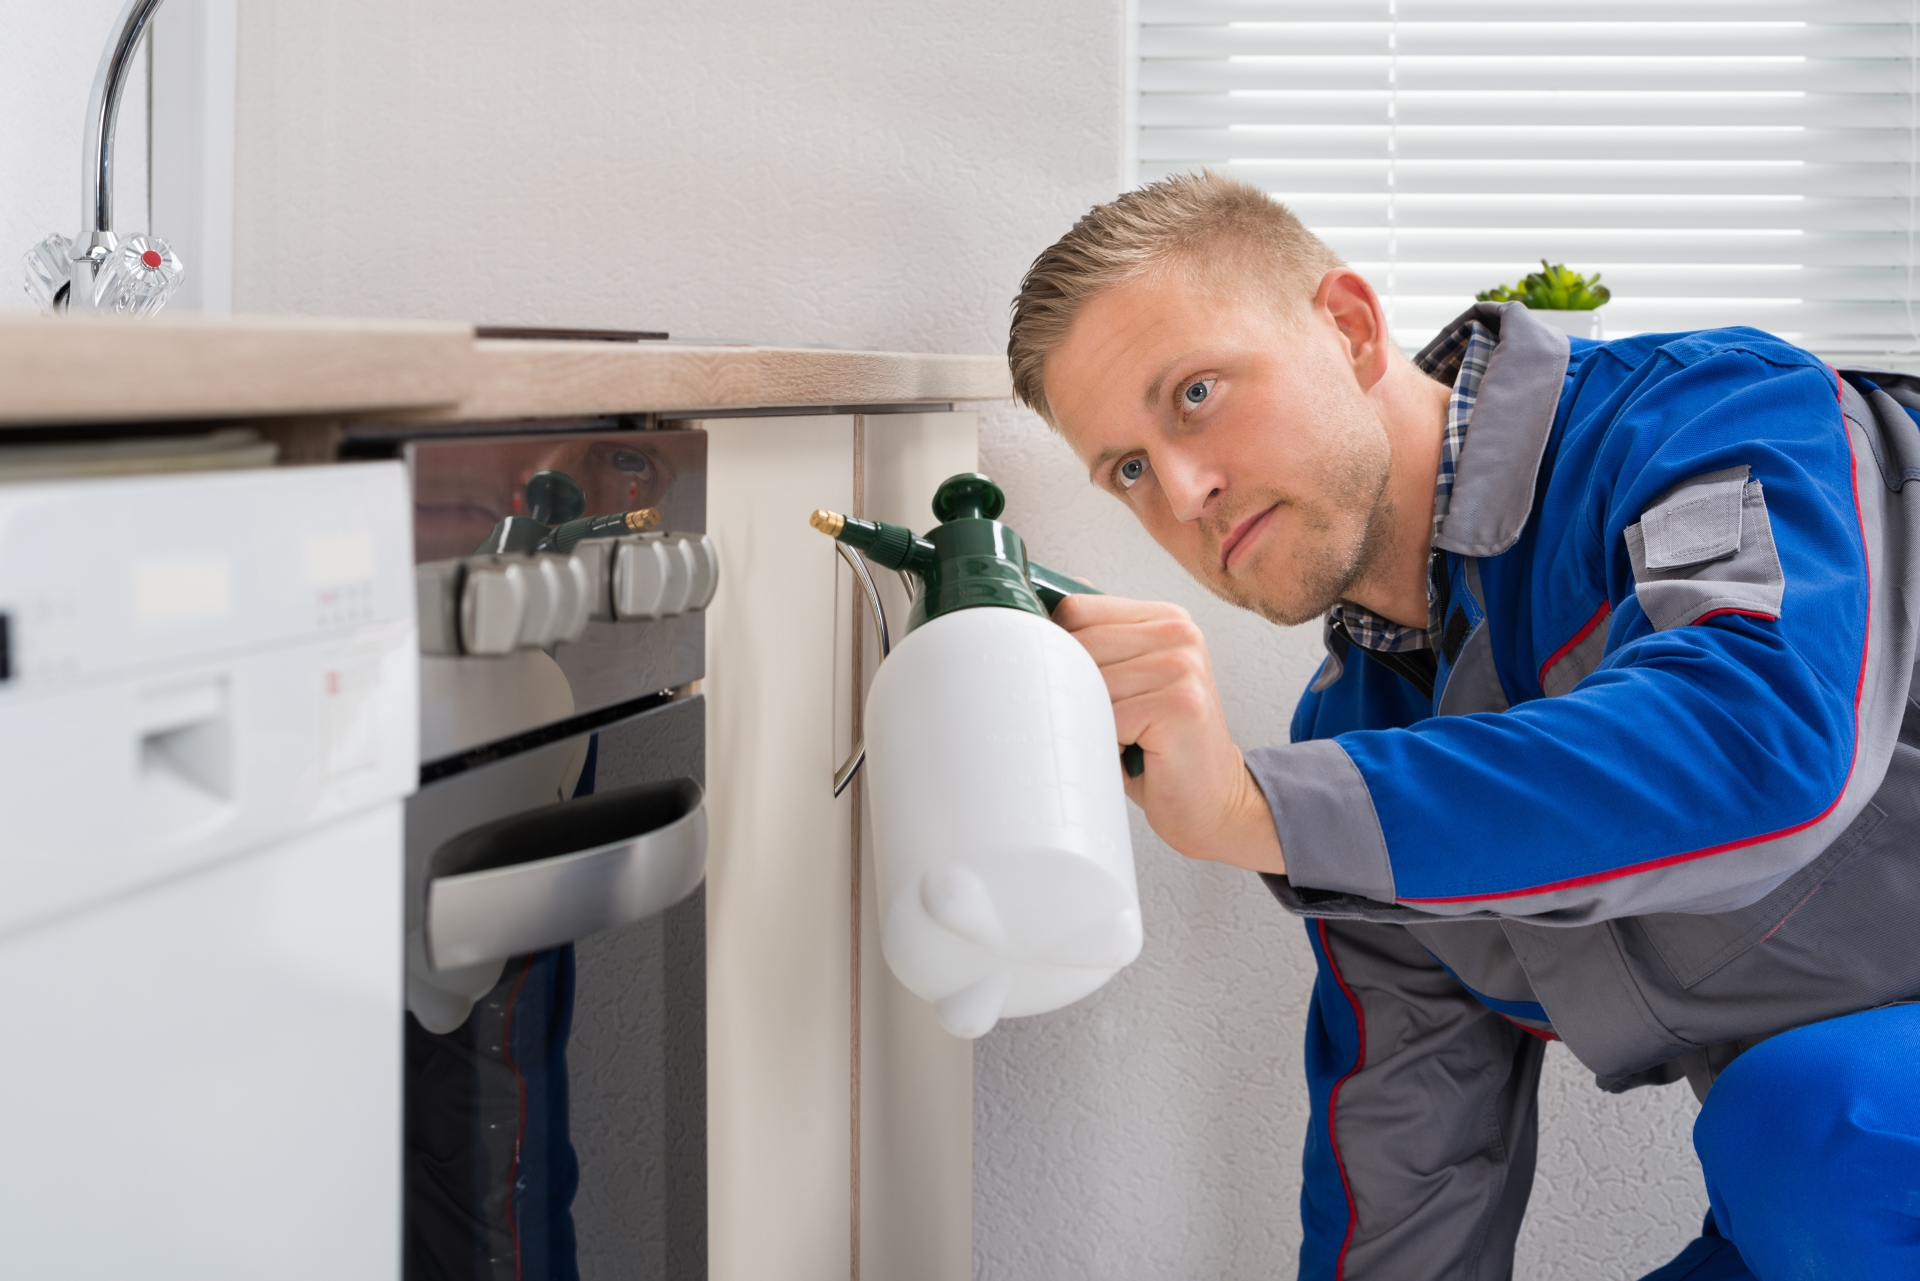 Pest Inspection, Pest Control in Brentford, Kew Bridge, TW8. Call Now 020 8166 9746